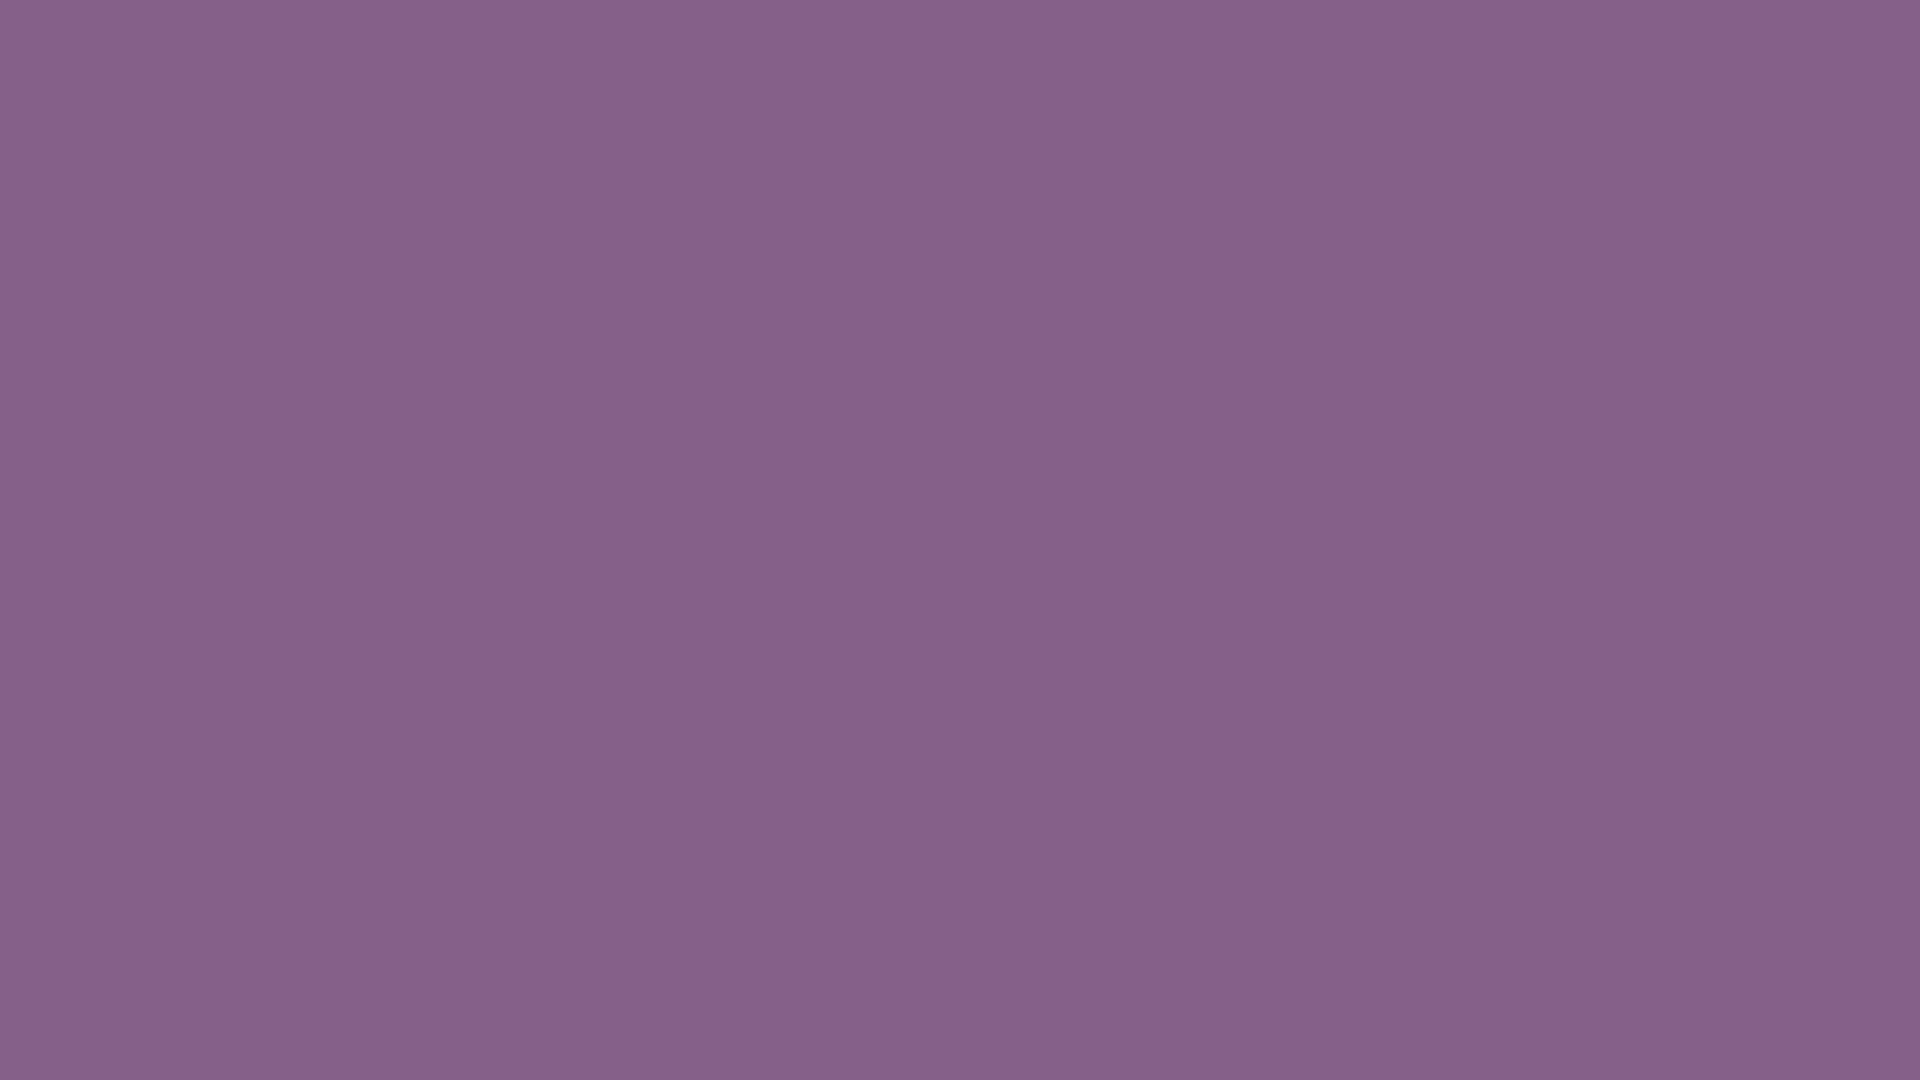 1920x1080 Chinese Violet Solid Color Background